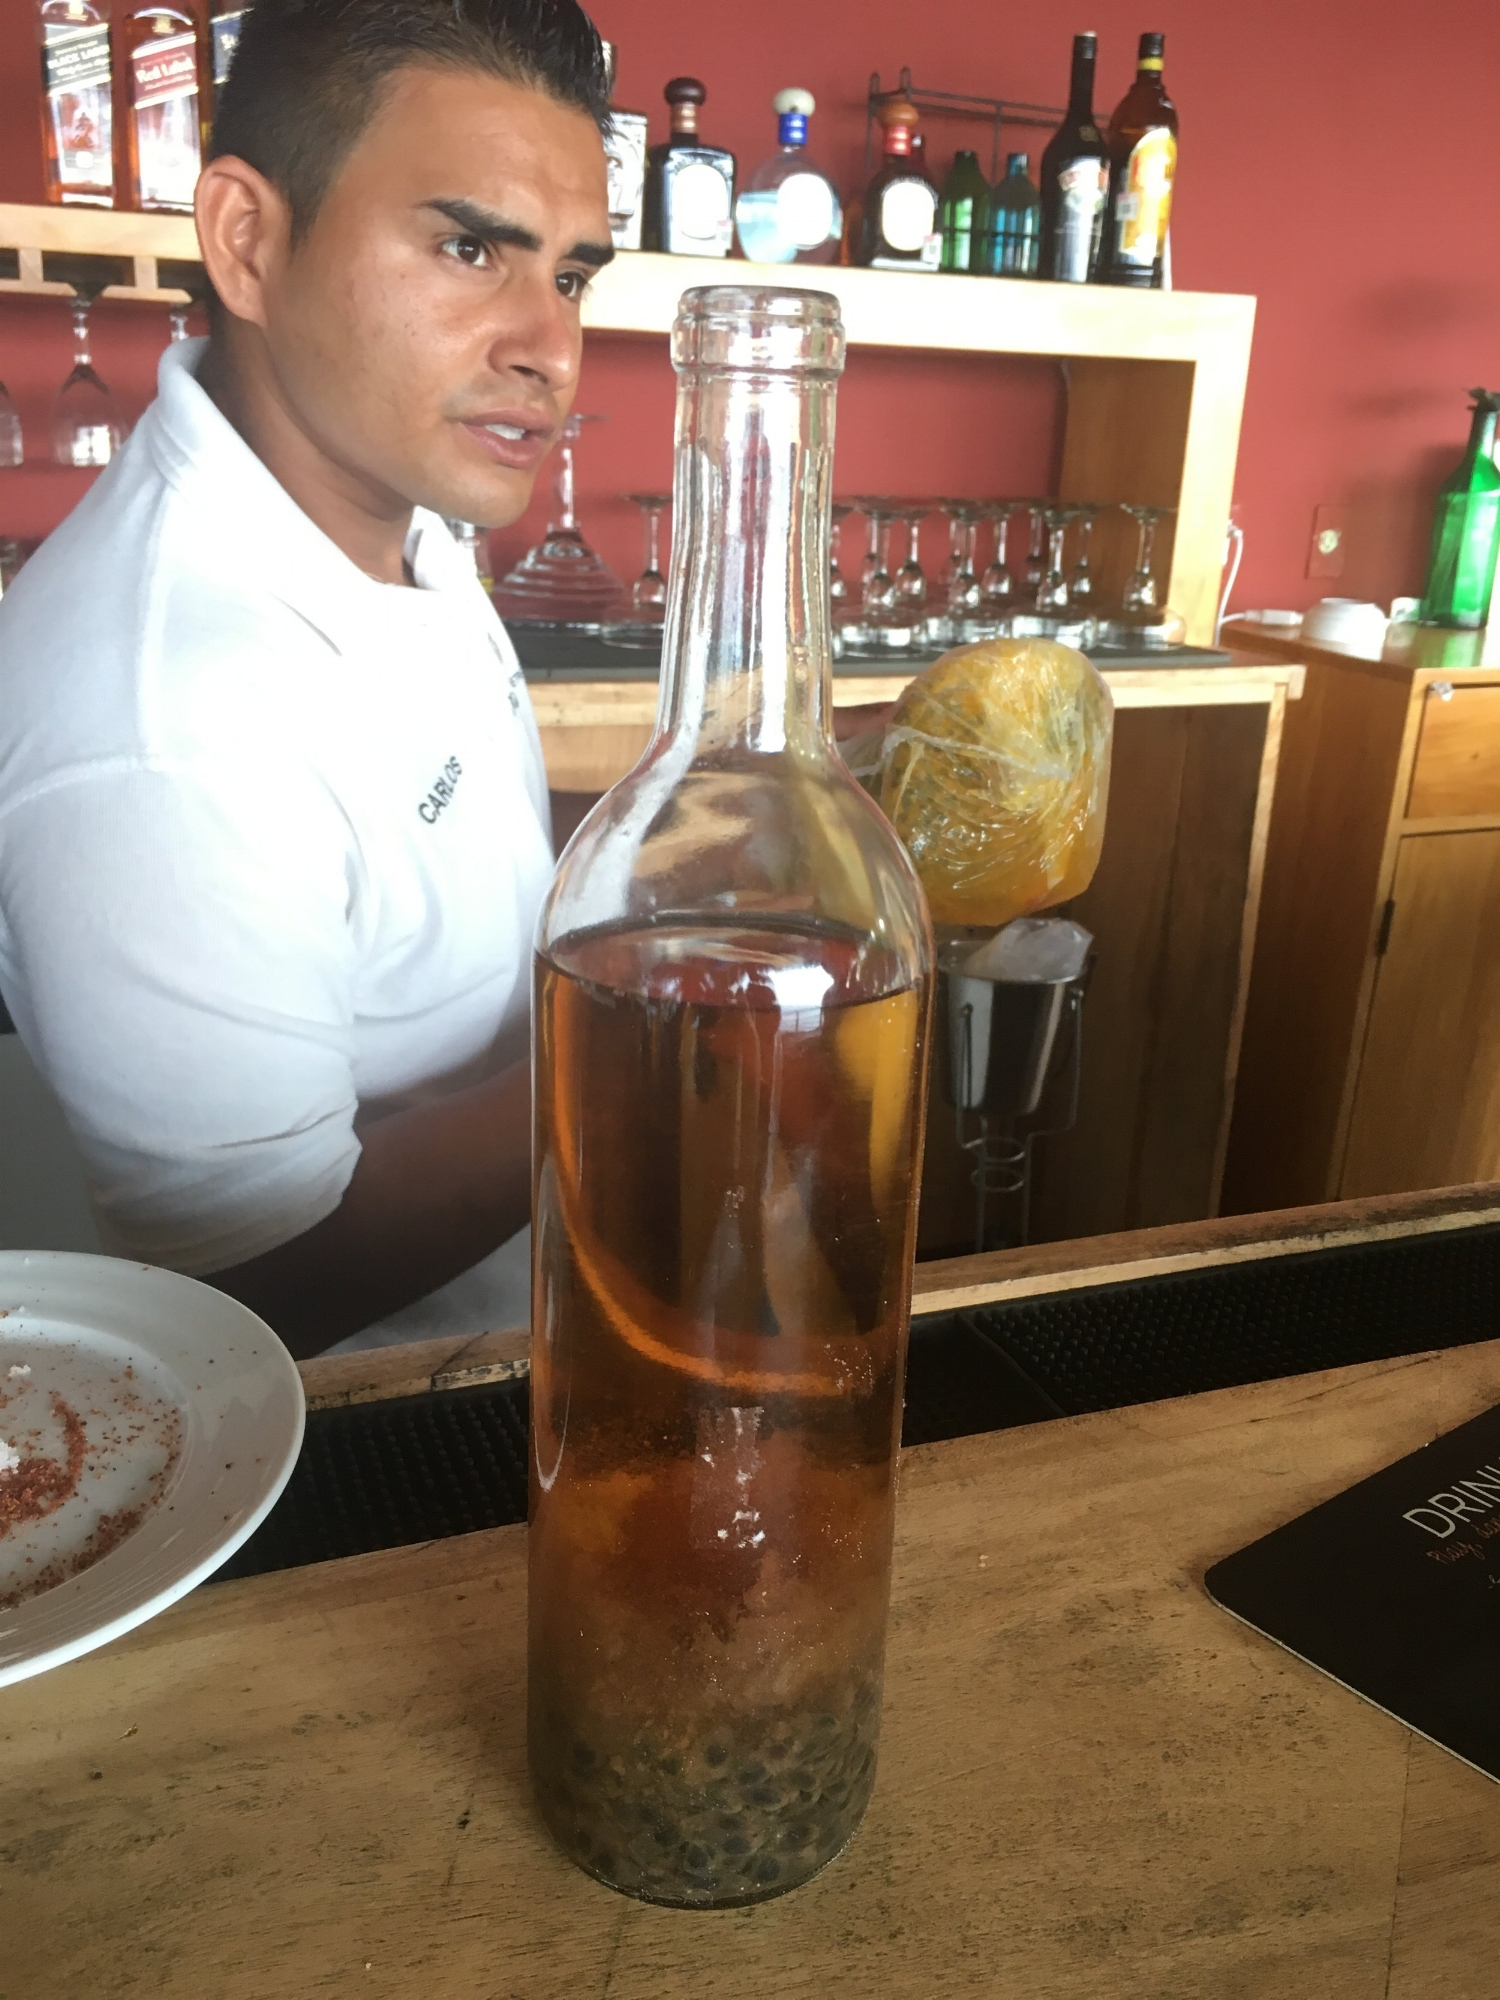 Carlos explaining what's in the strongest tequila in the world in the bottle pictured